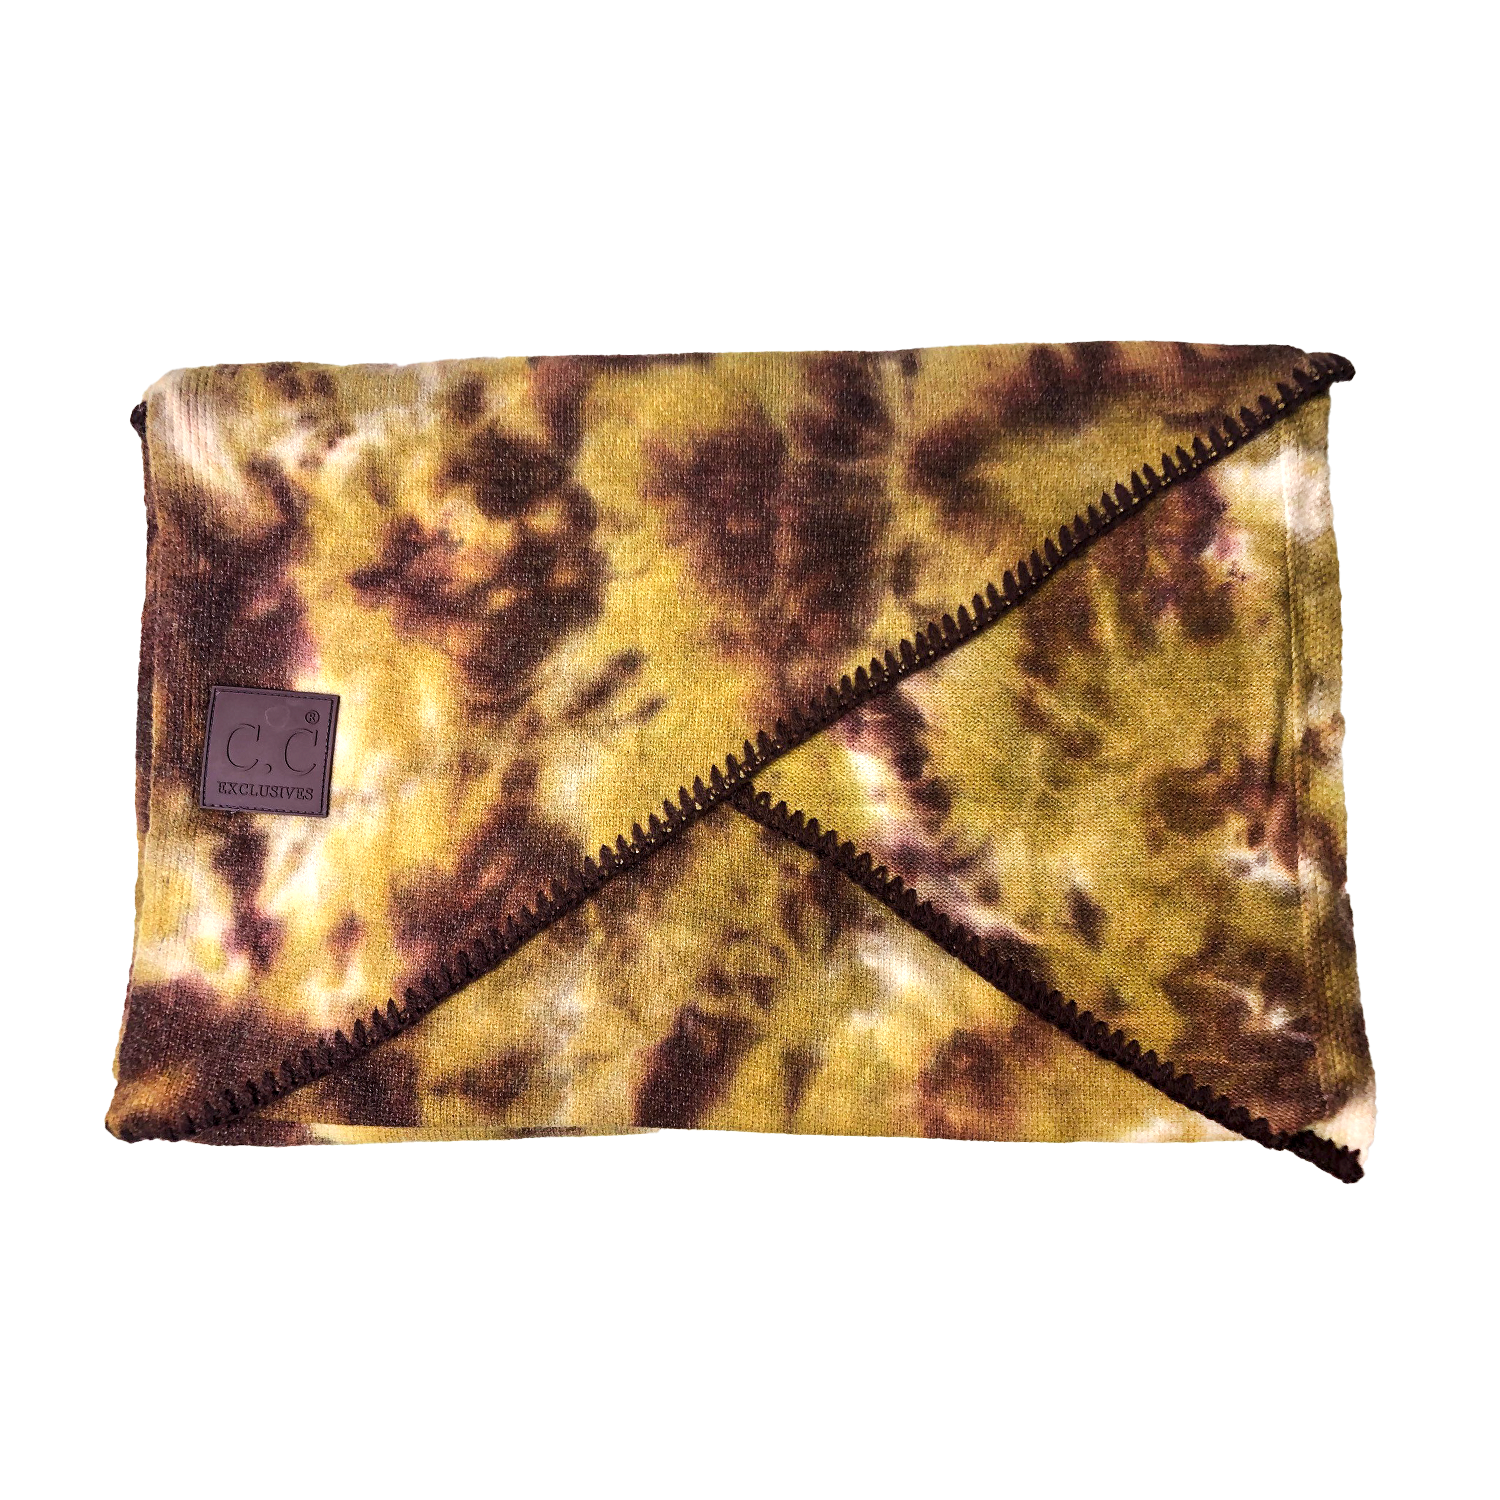 SF-7380 Tie Dye Scarf with C.C Rubber Patch - Antique Moss/Wild Ginger